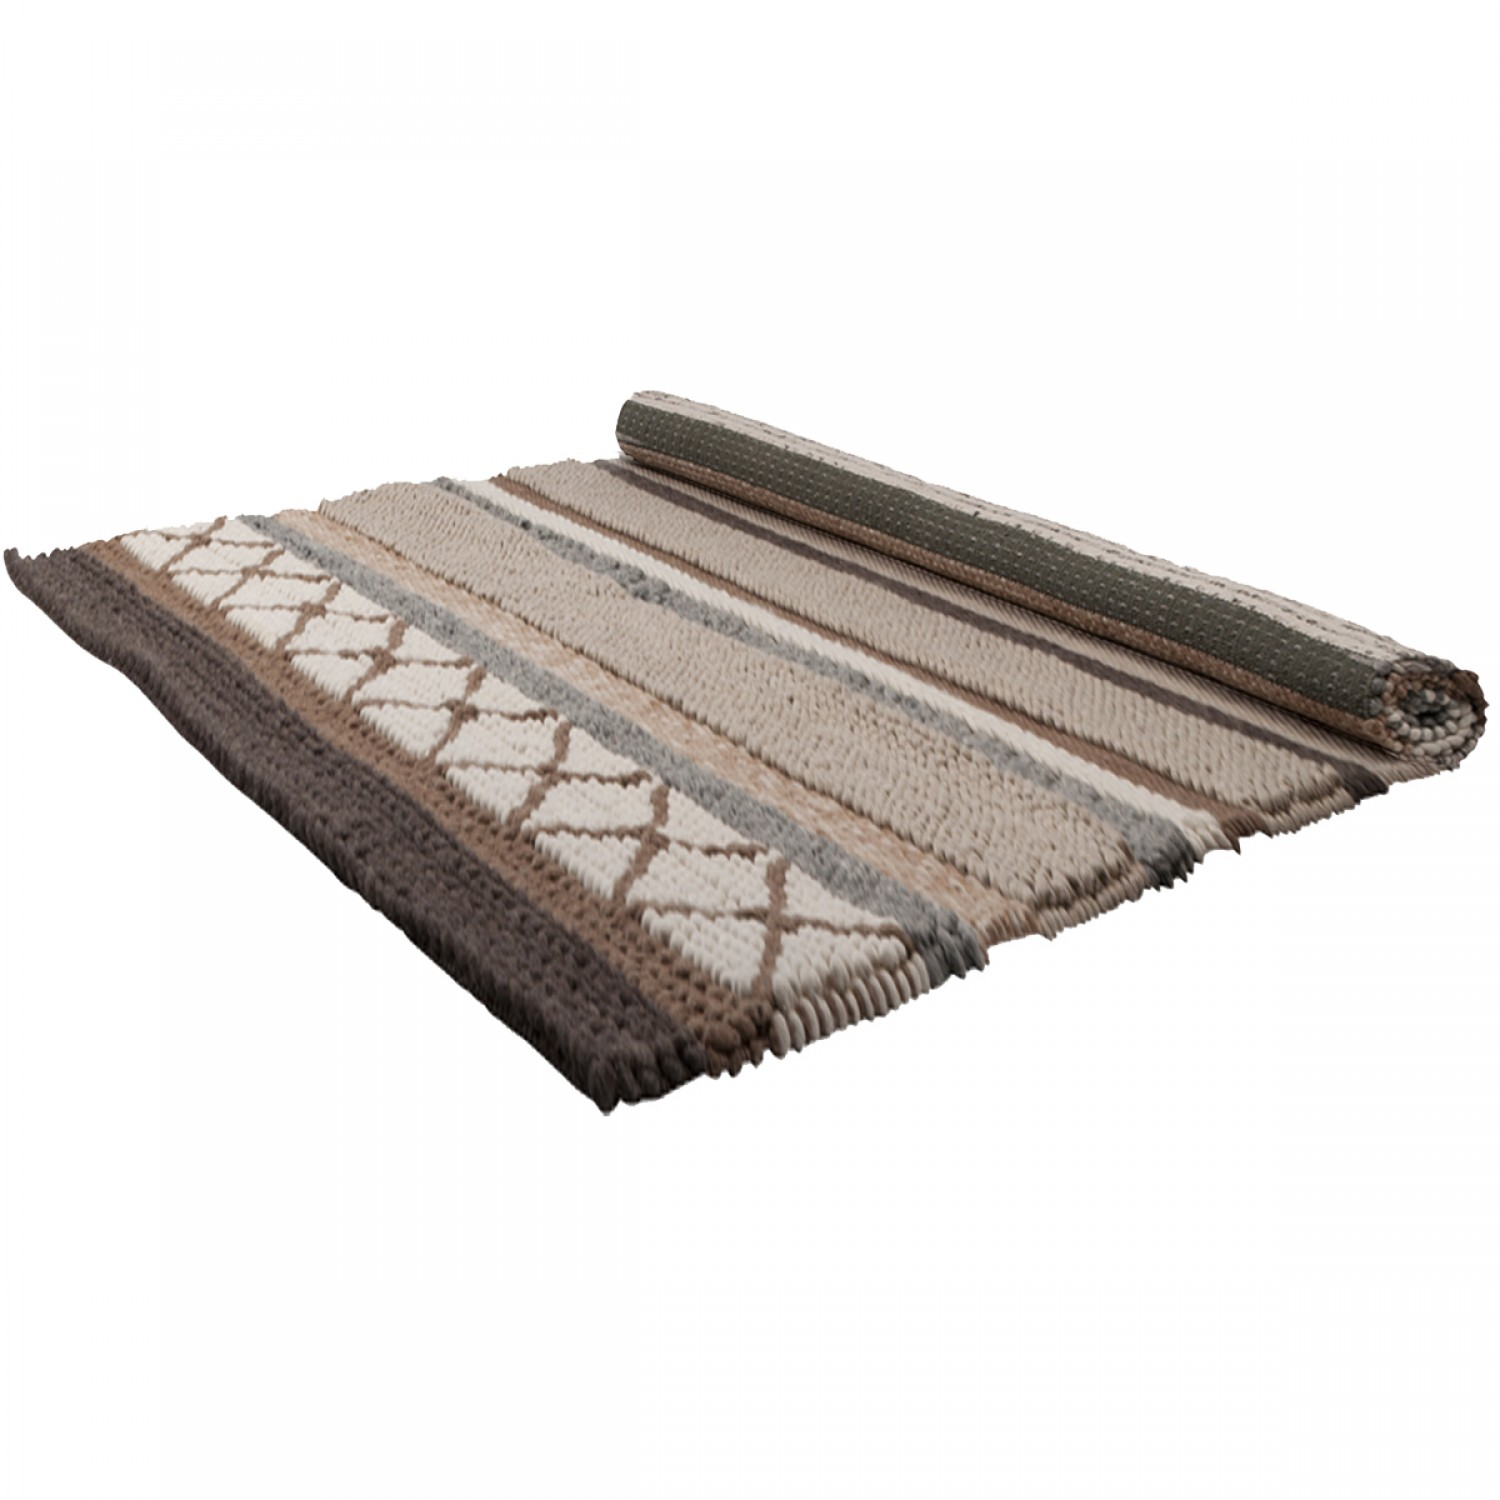 tapis beige et marron tapis salon beige marron caen table ahurissant caen meteo hiver foot with. Black Bedroom Furniture Sets. Home Design Ideas